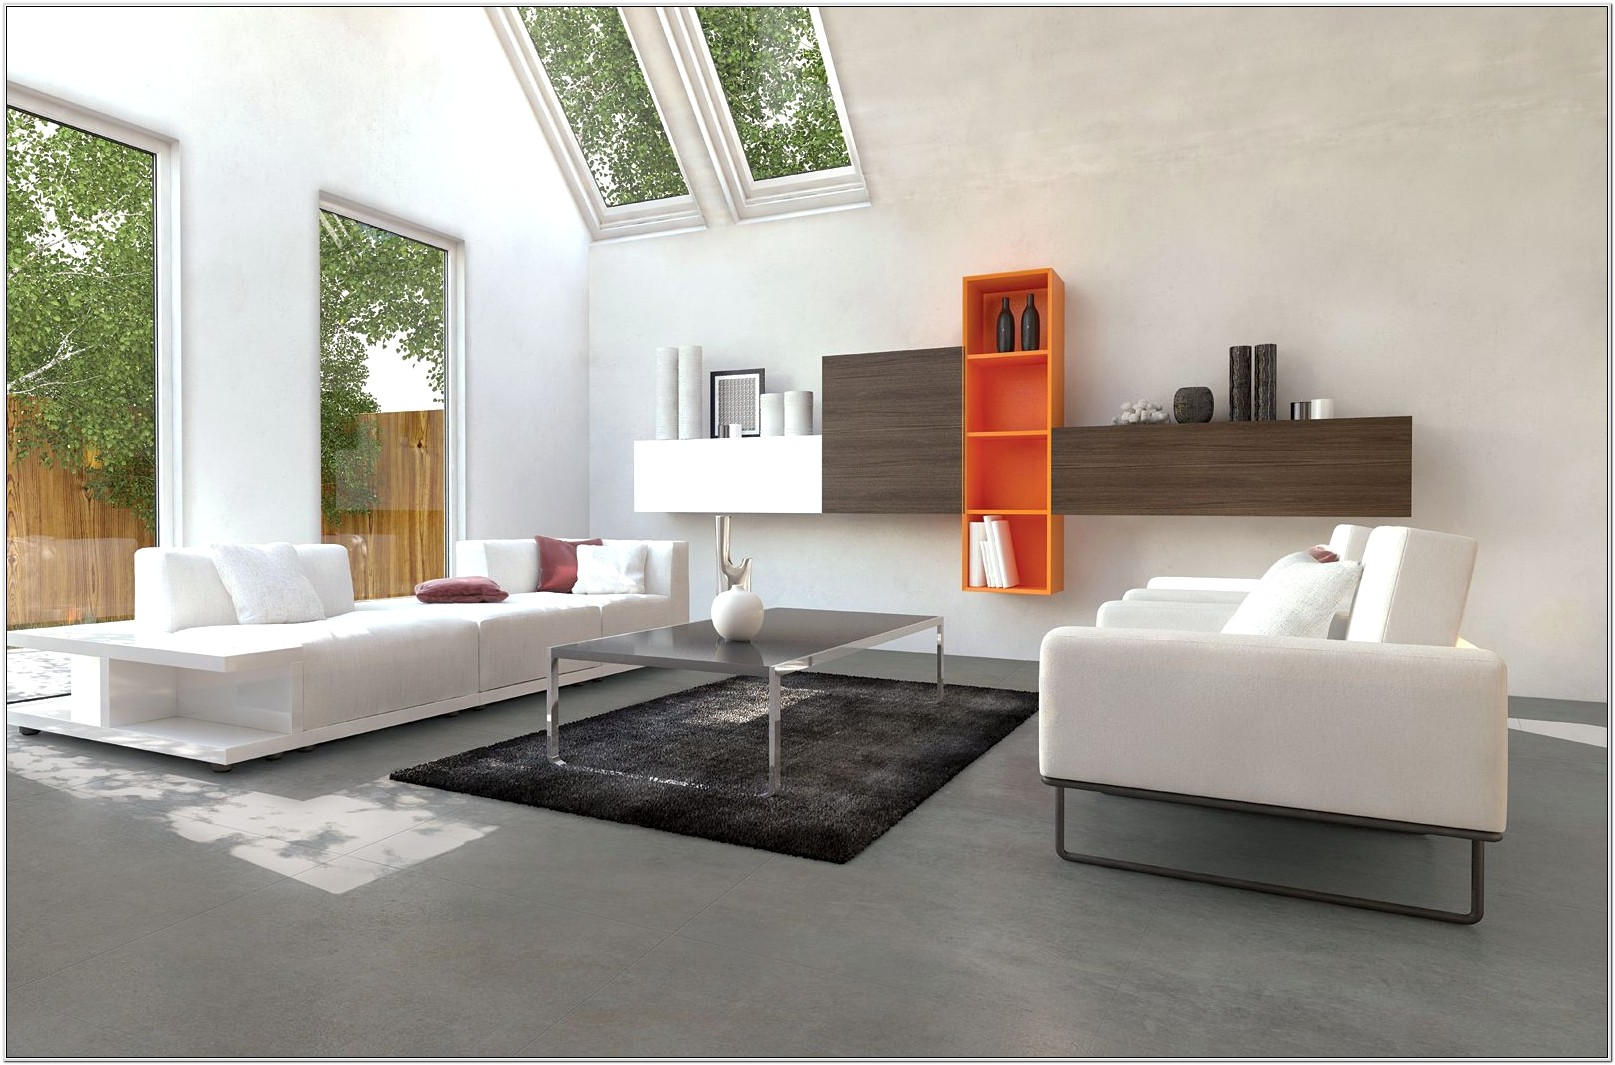 Concrete Floor In Living Room Ideas